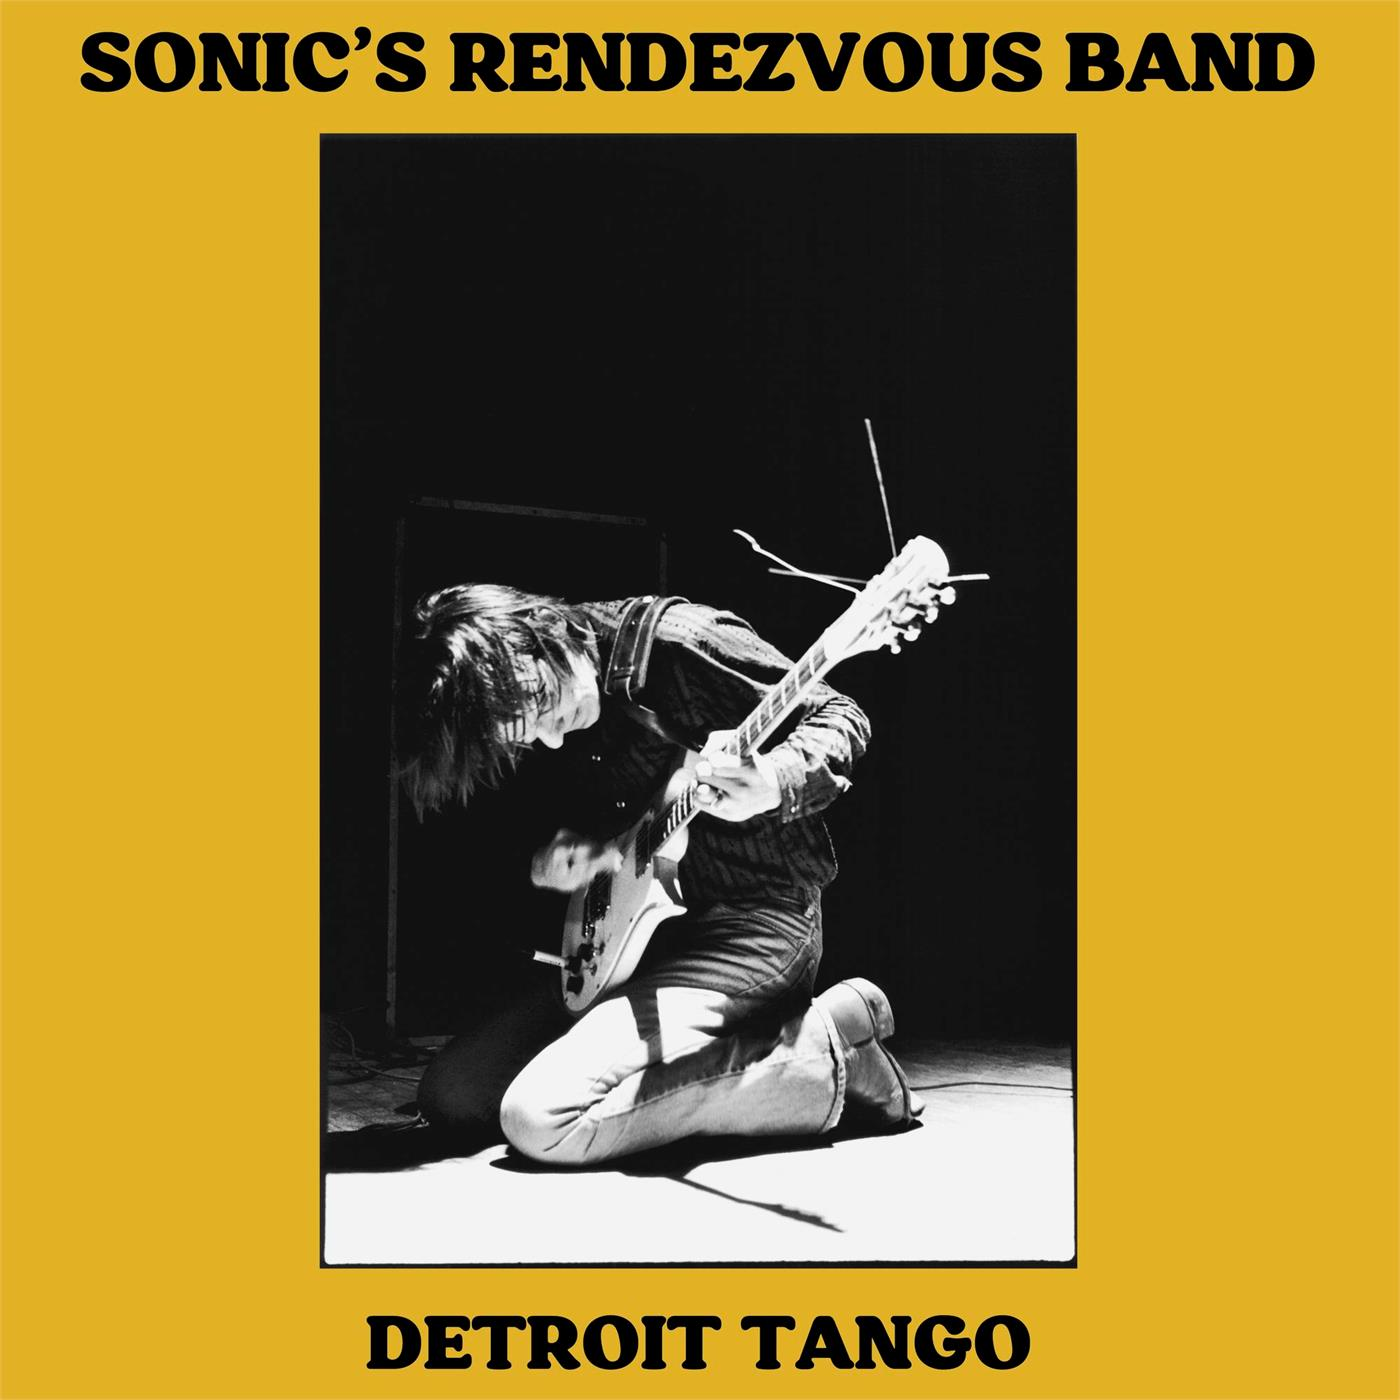 Sonic's Rendezvous Band - Detroit Tango [LTD 2xLP] (Red vinyl)